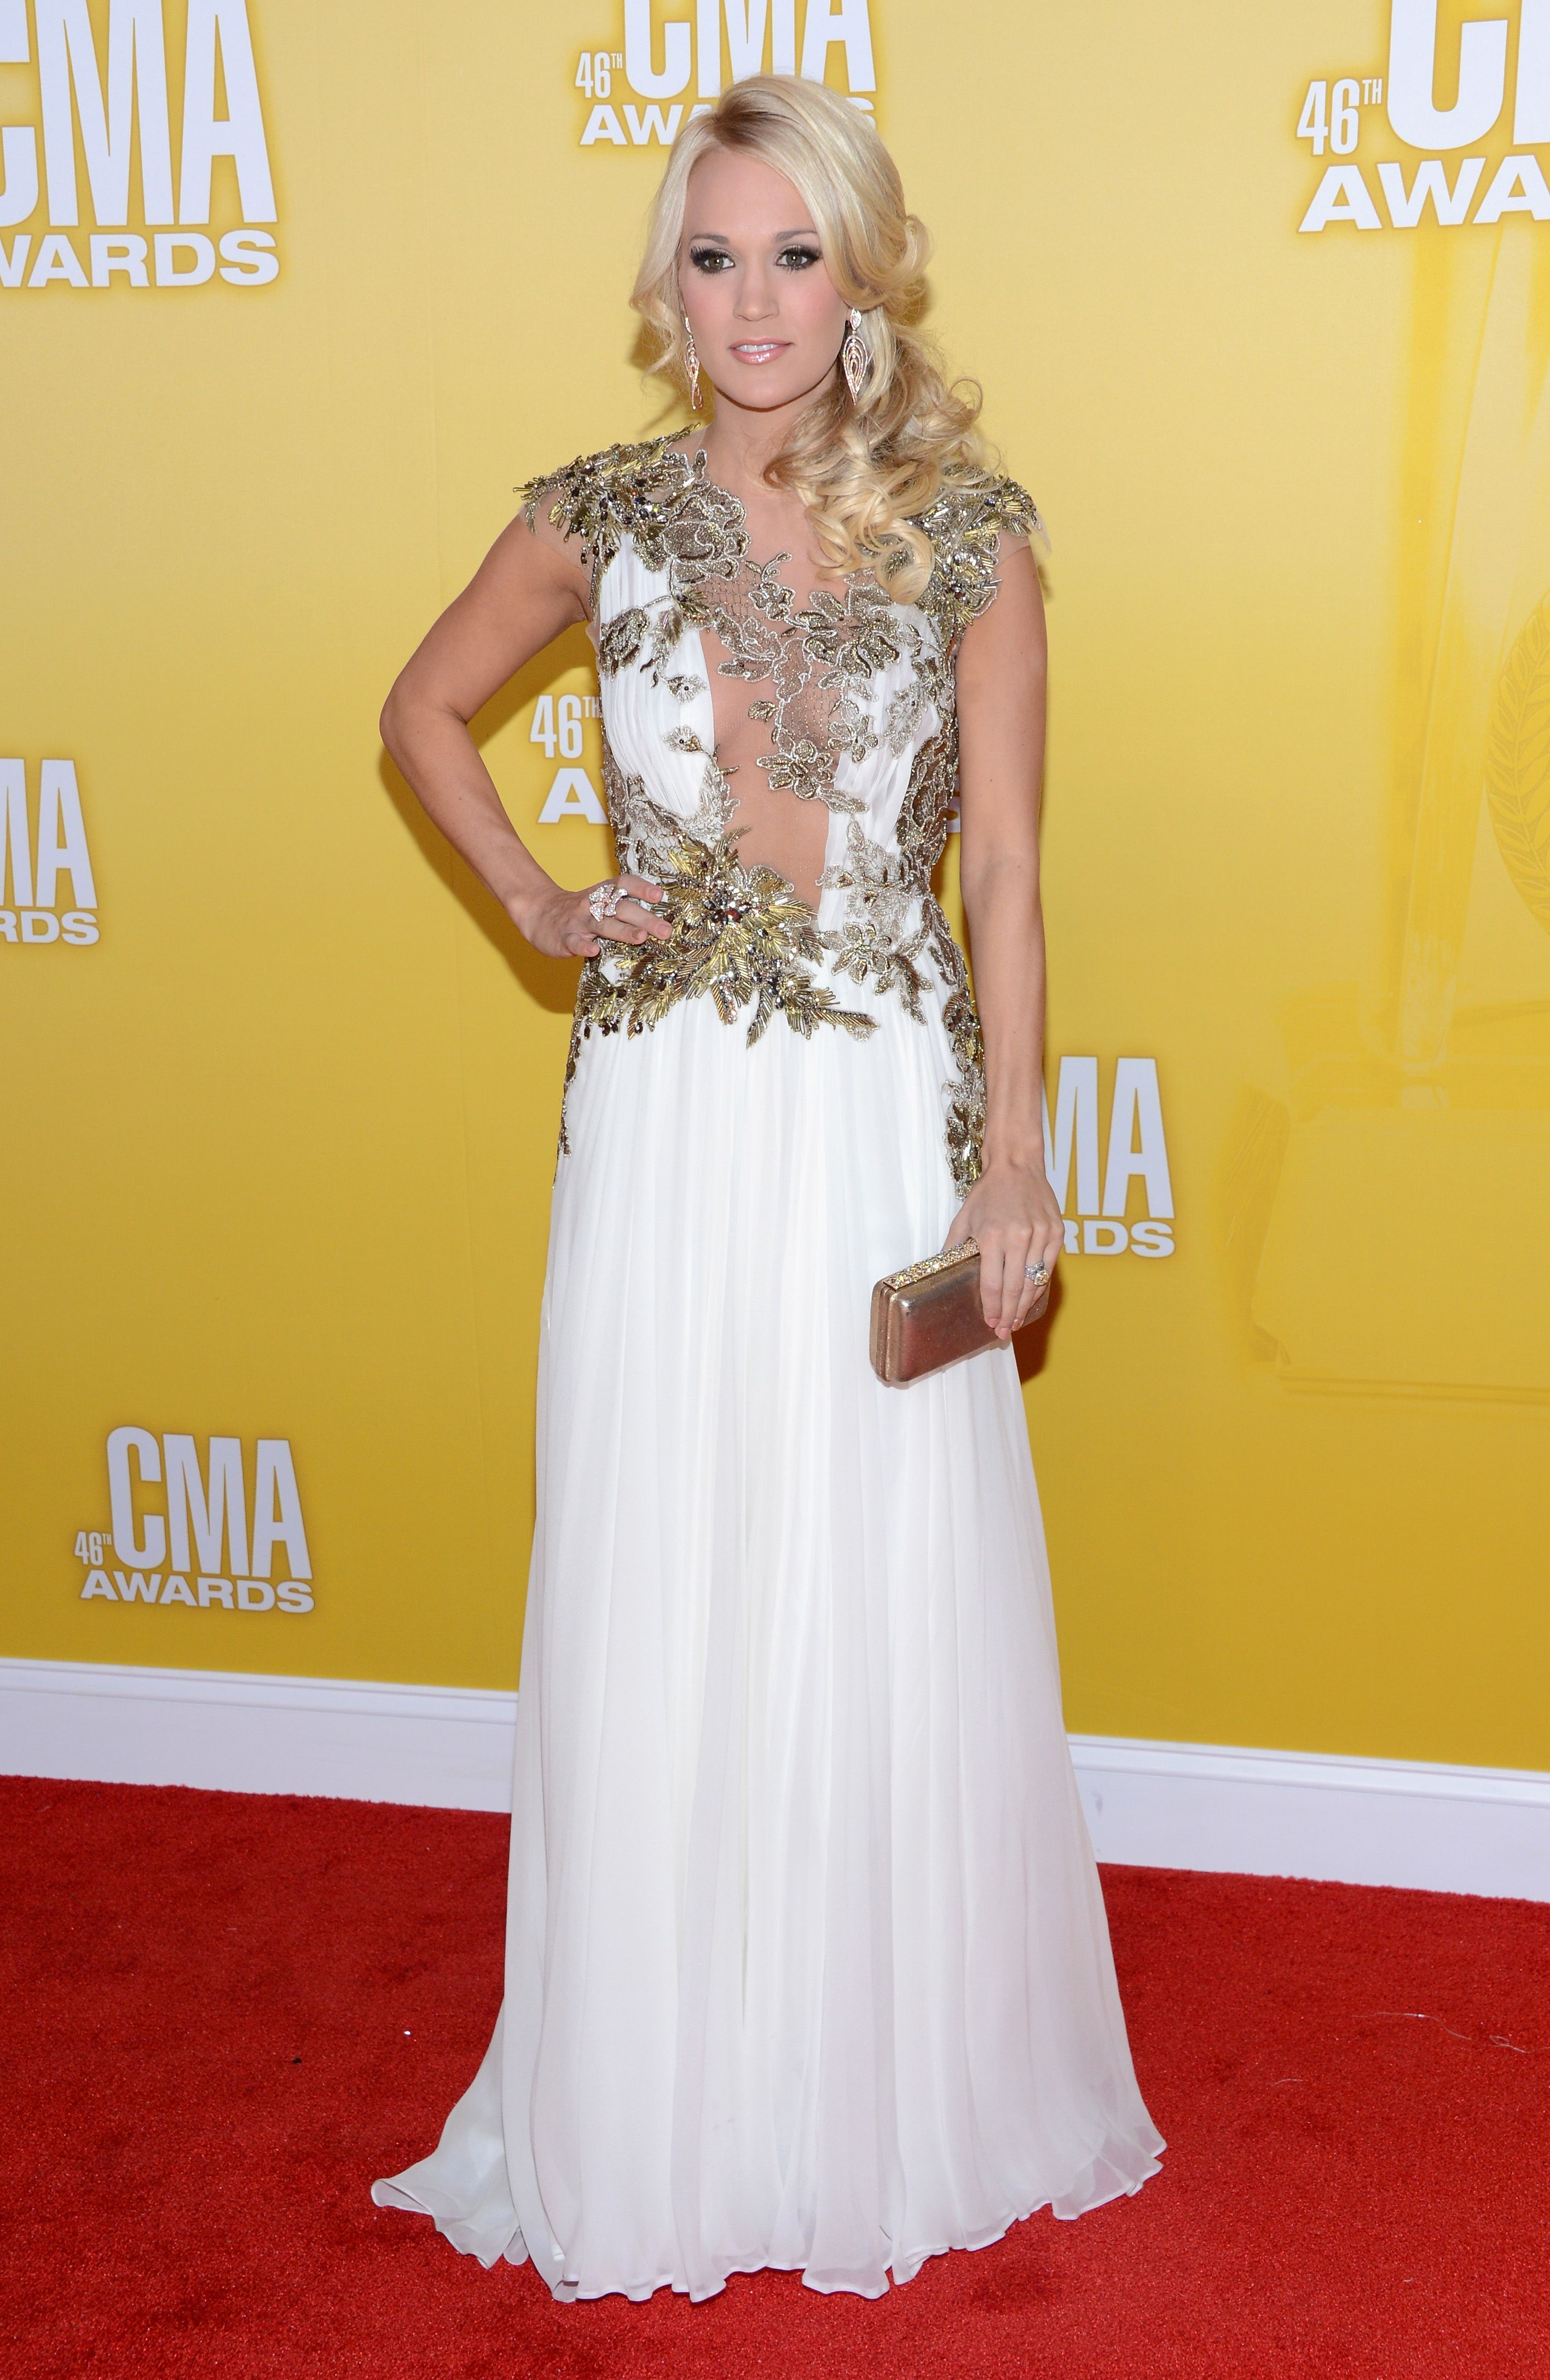 Carrie Underwood Goes For Gold On The ACM Awards Red